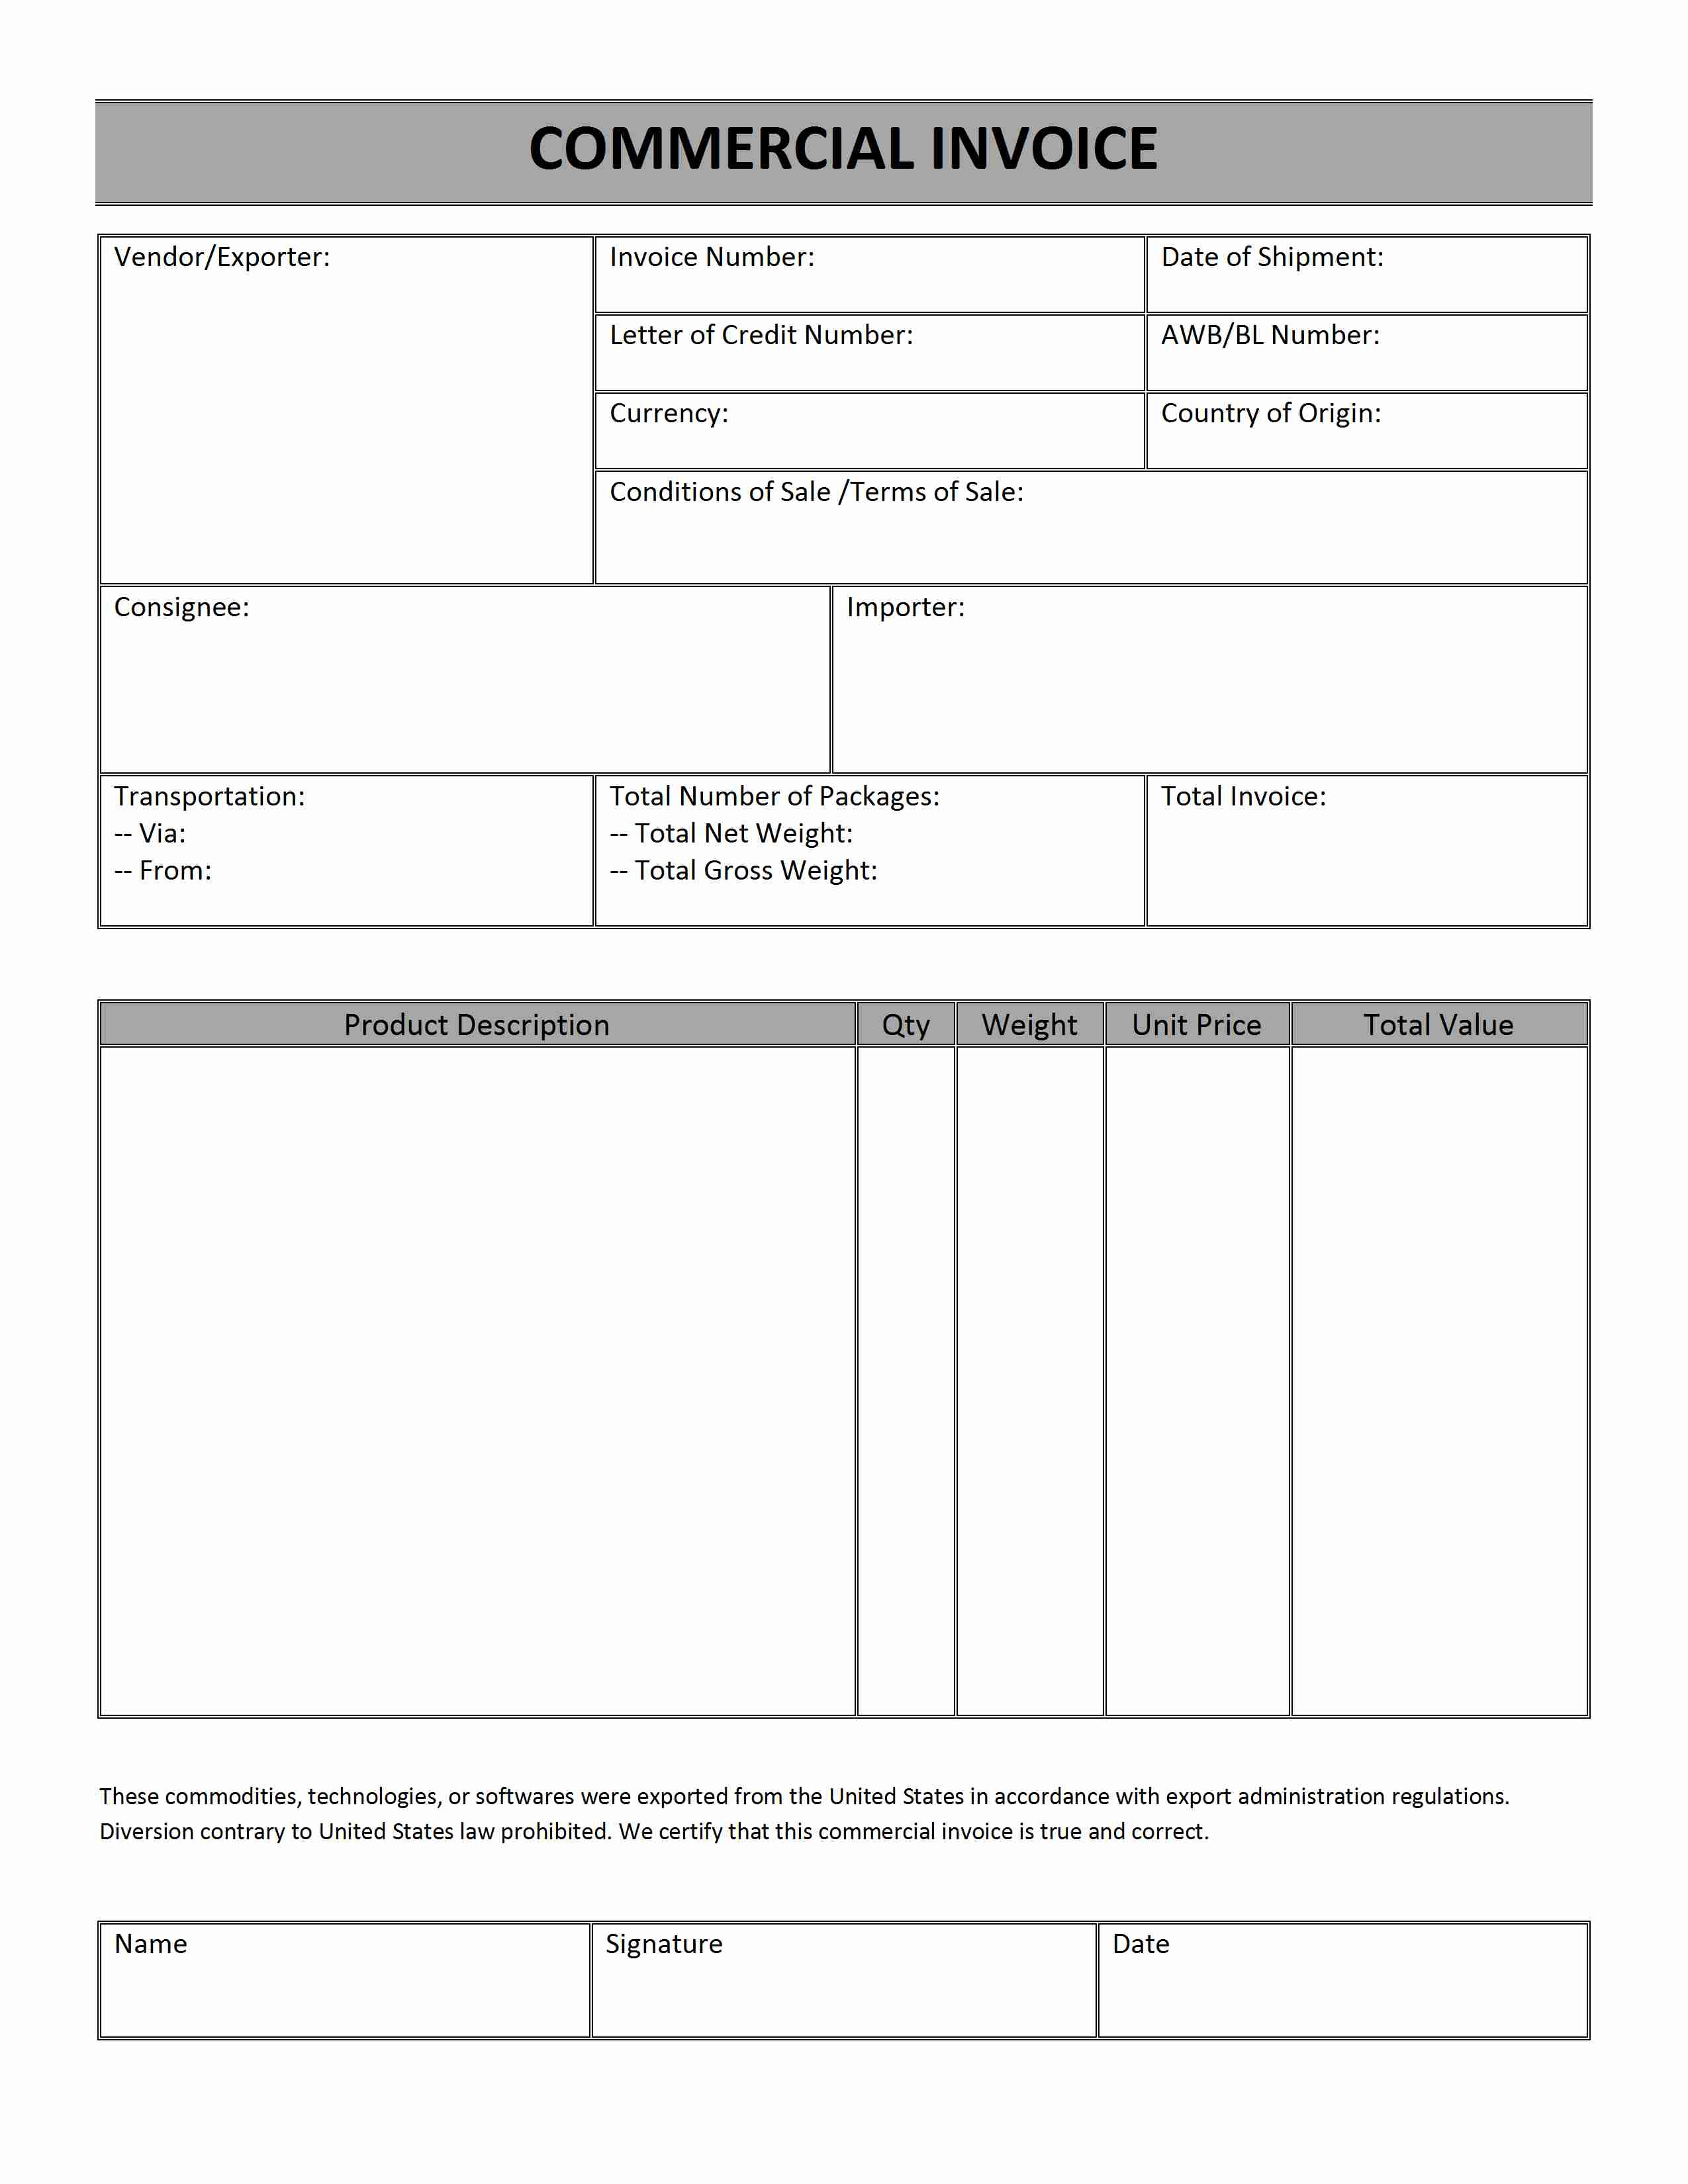 Darkfaderus  Splendid Printable Sales Invoice Simple Invoice Form Free Invoice  With Extraordinary Printable Receipt Free  Free Printable Raffle Tickets  Receipt   Printable With Astounding Copy Of Payment Receipt Also Receipt Of Document In Addition Free Blank Rent Receipts And Local Property Tax Receipt As Well As Nordstrom Returns No Receipt Additionally Receipts Templates Microsoft Word From Happytomco With Darkfaderus  Extraordinary Printable Sales Invoice Simple Invoice Form Free Invoice  With Astounding Printable Receipt Free  Free Printable Raffle Tickets  Receipt   Printable And Splendid Copy Of Payment Receipt Also Receipt Of Document In Addition Free Blank Rent Receipts From Happytomco